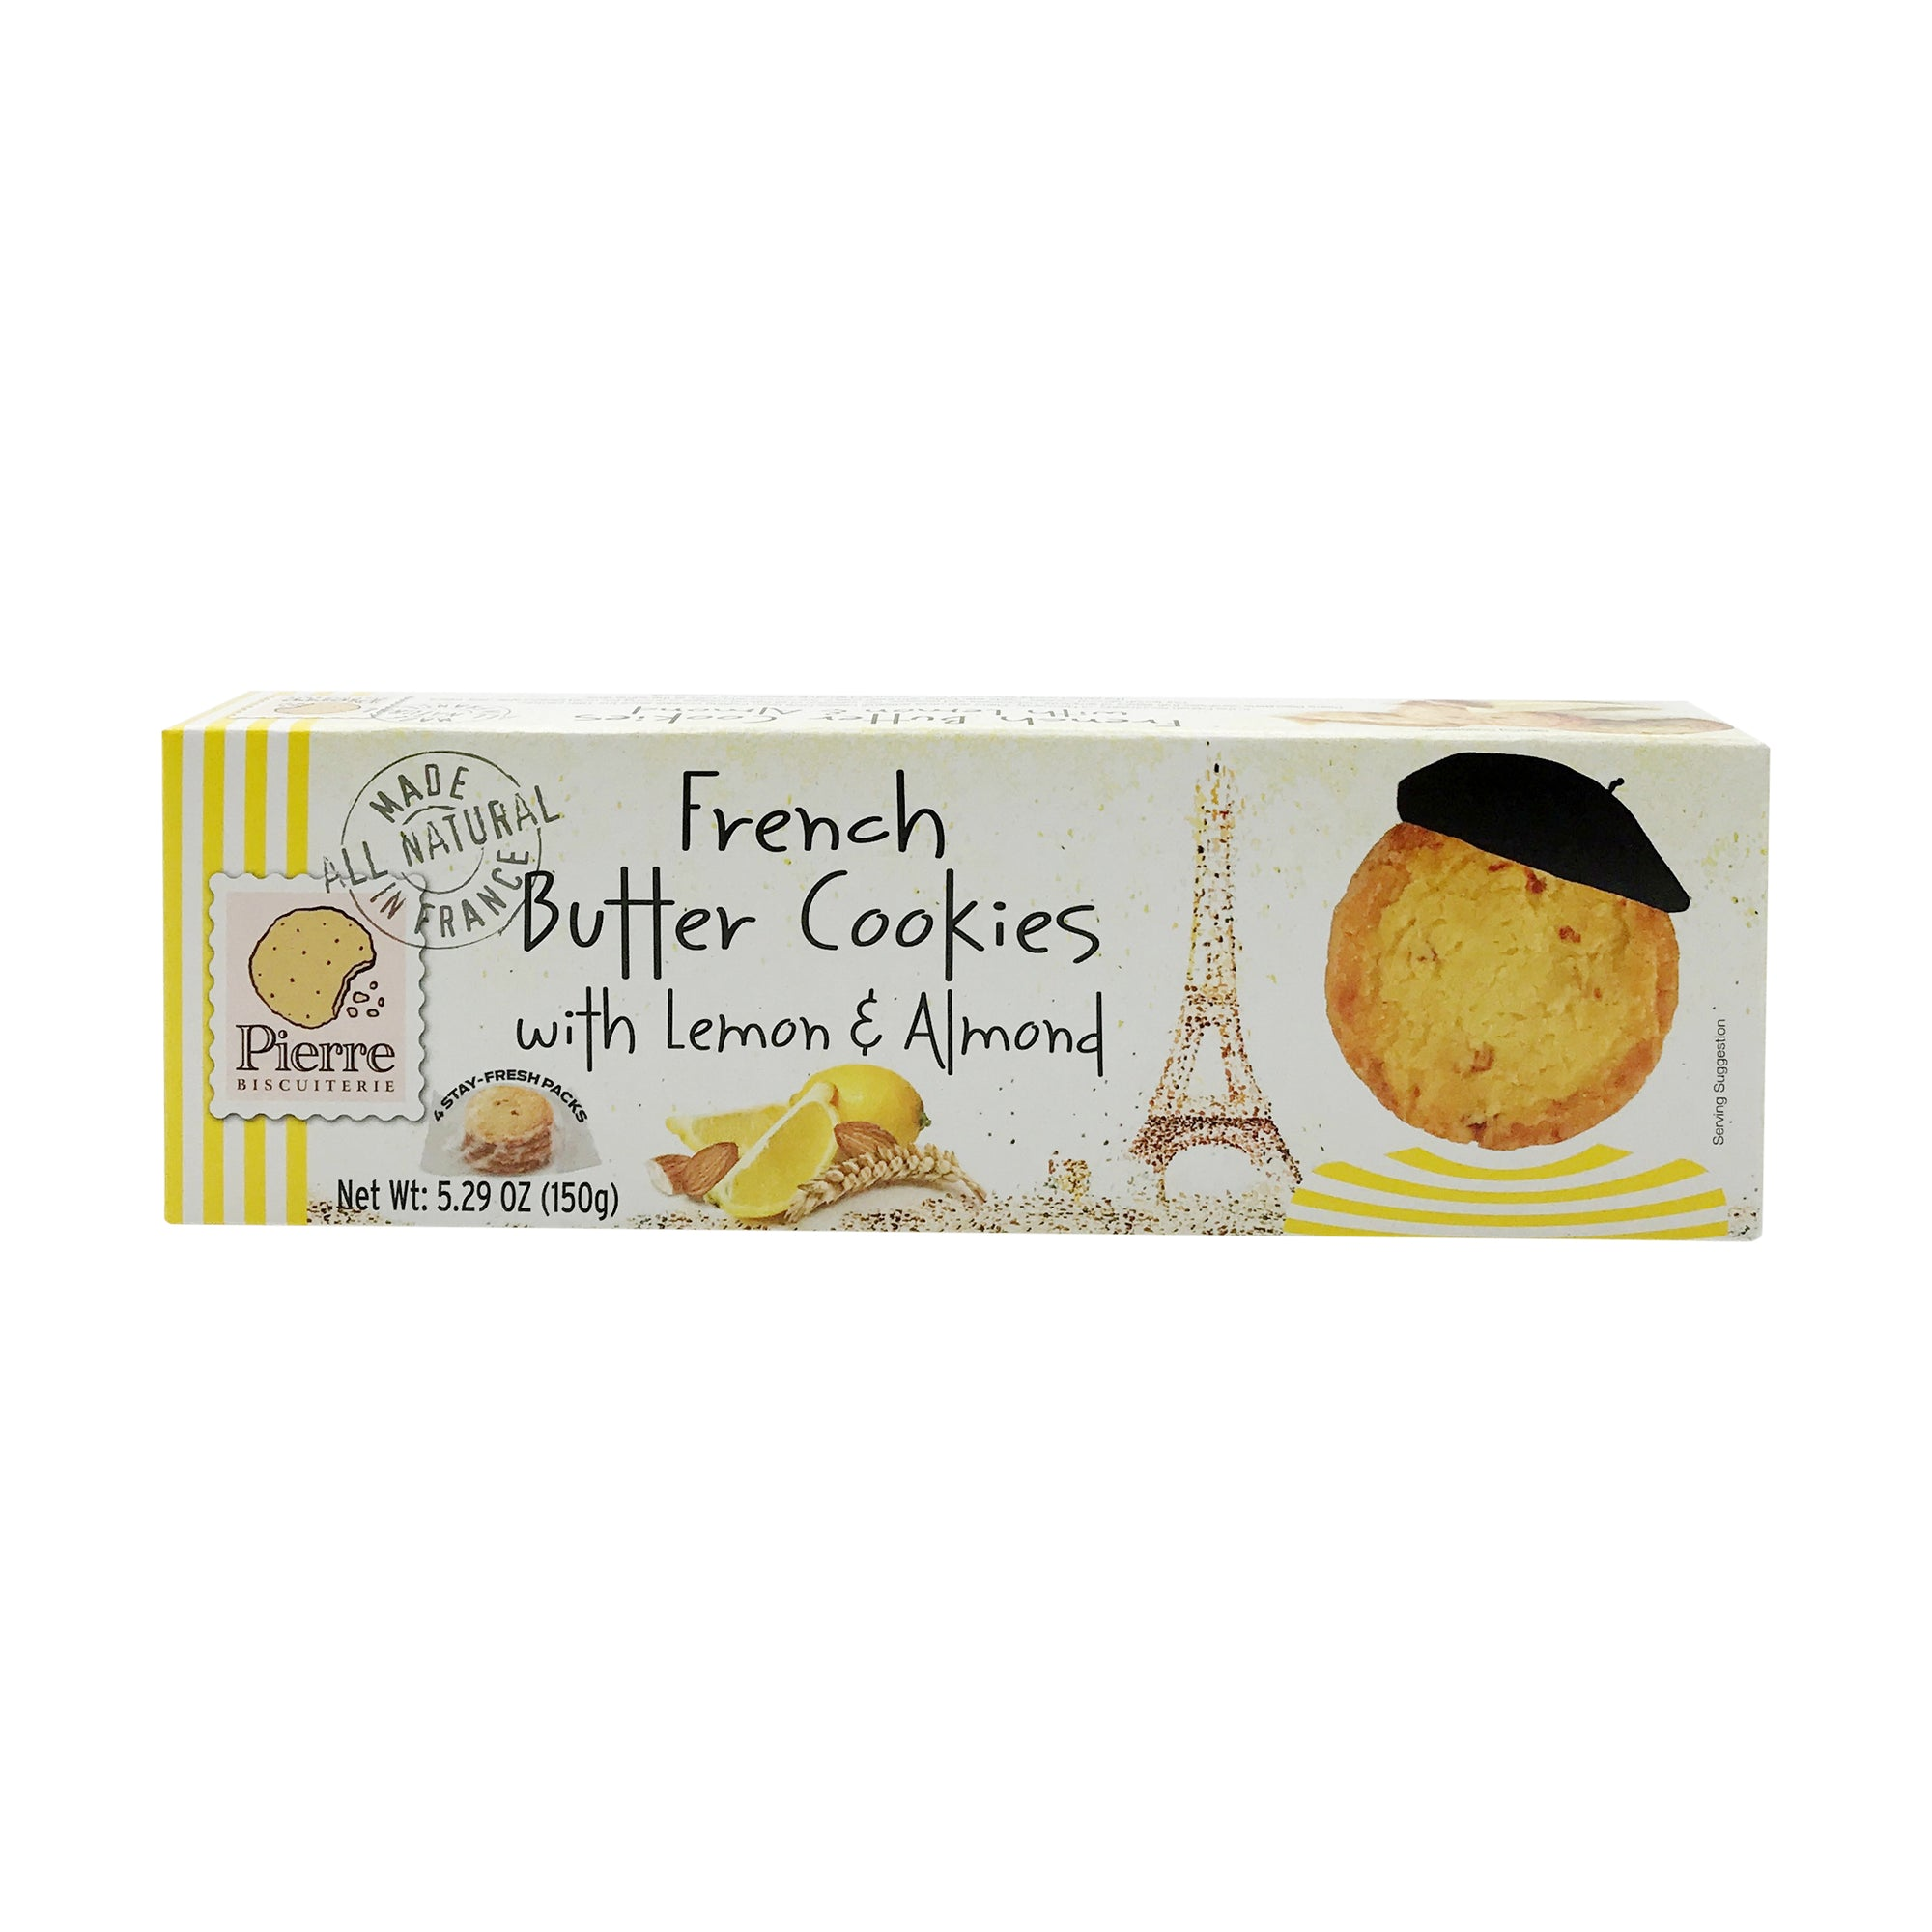 French Butter Cookies with Lemon & Almond, 5.29 oz - Snazzy Gourmet